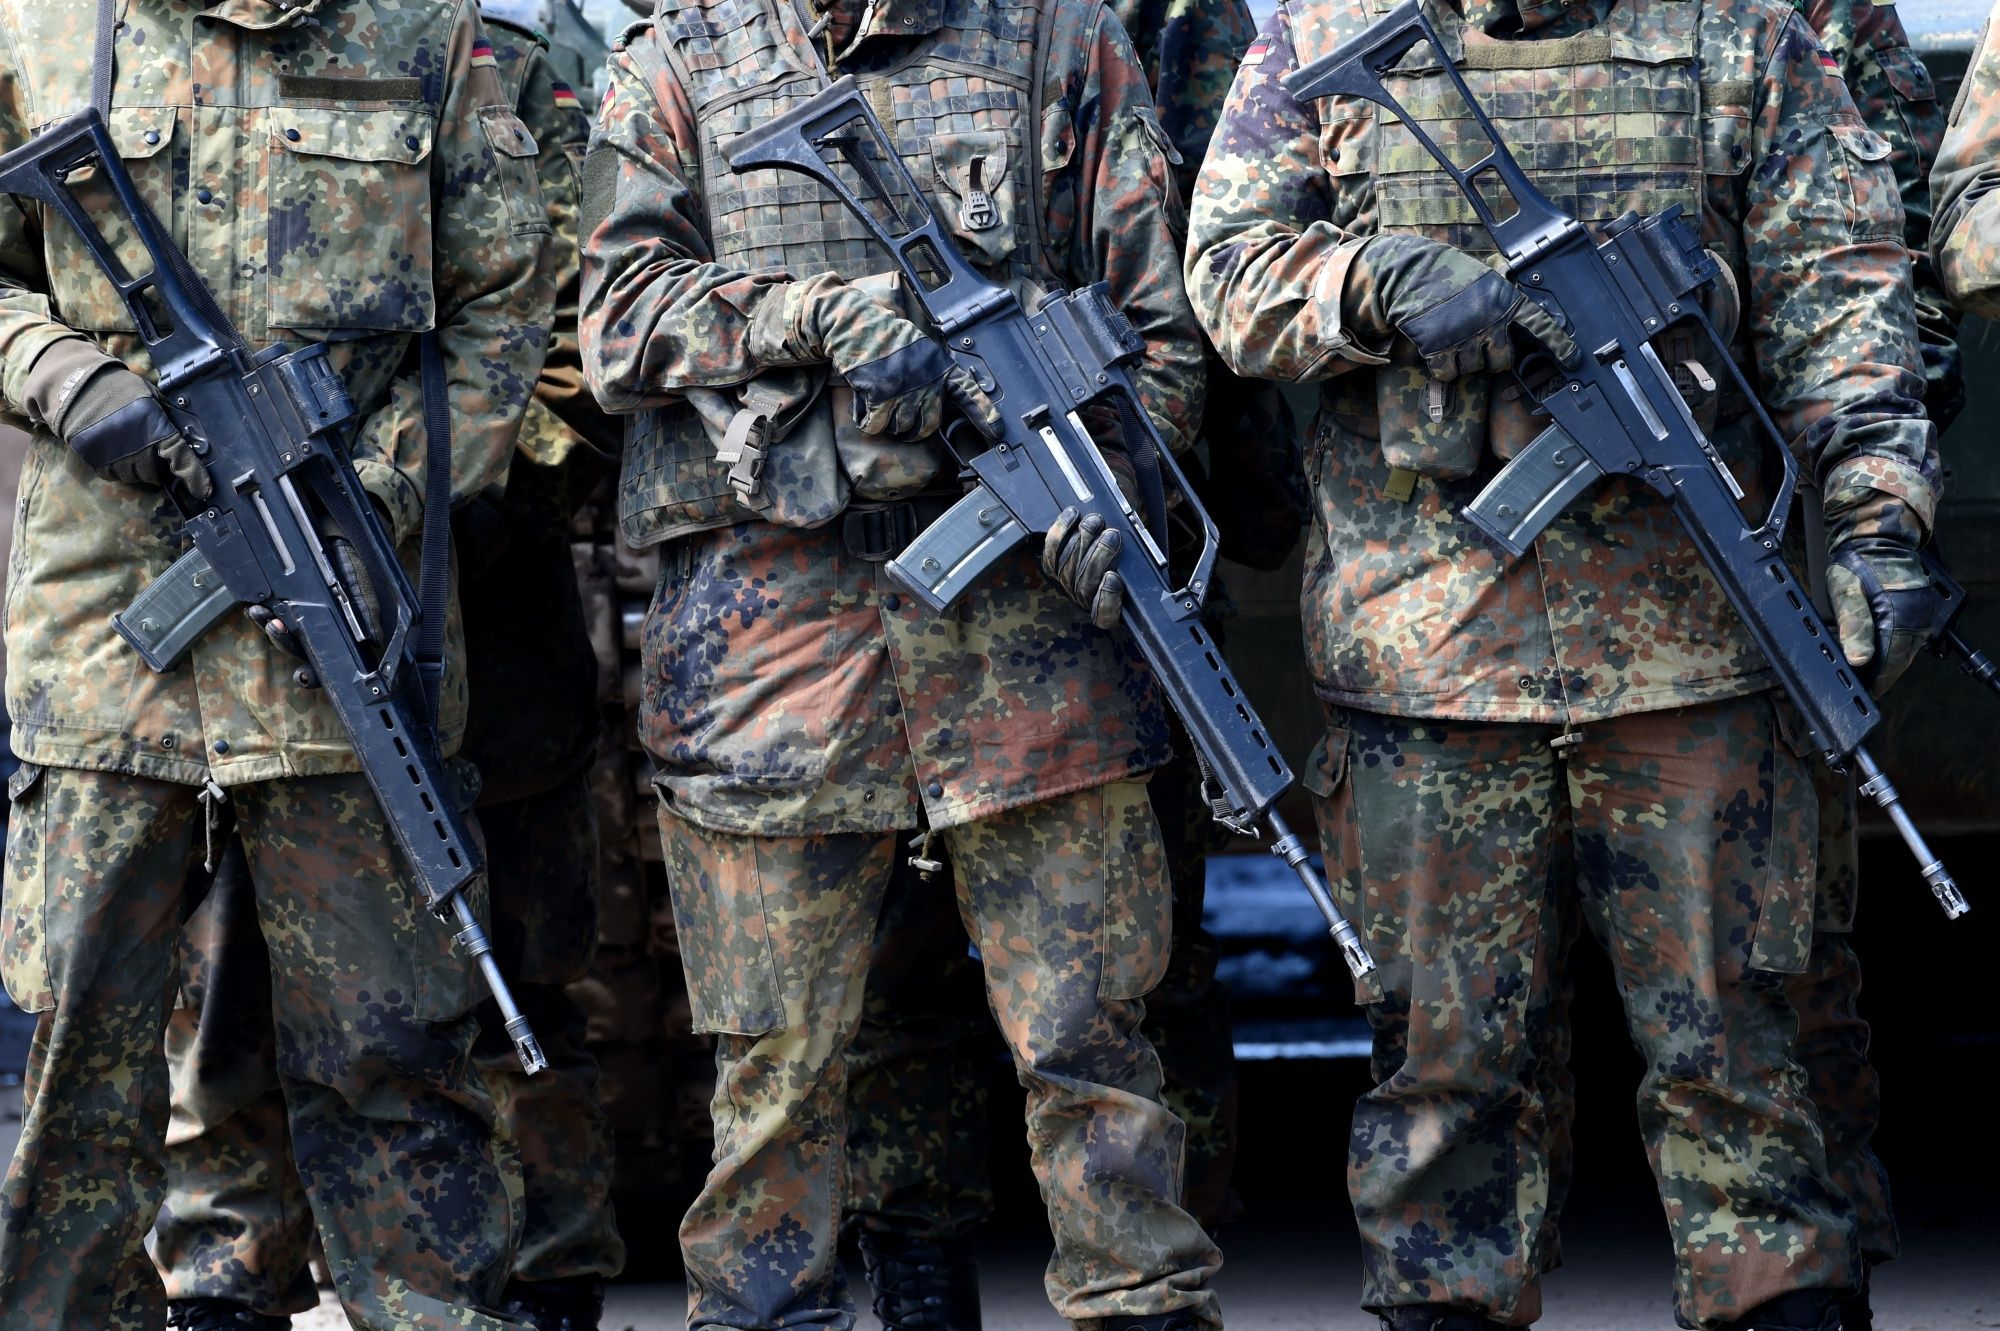 Germany Withdraws Some Troops From Iraq Over Iran Tensions